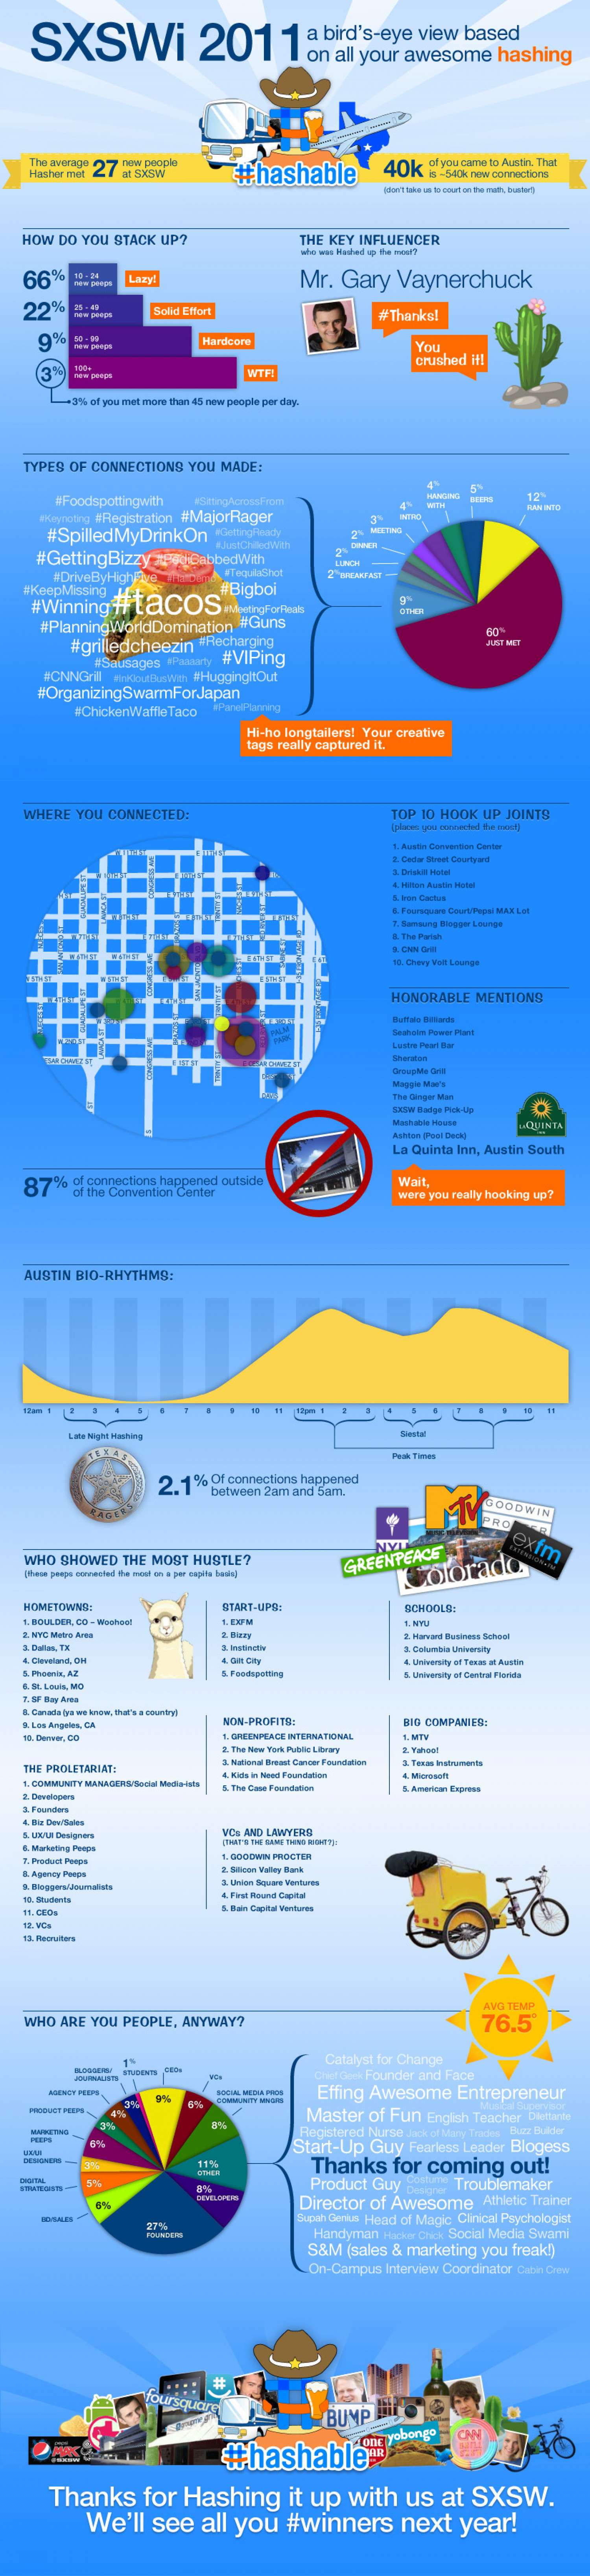 SXSW 2011: A bird's-eye view of all you #Winners Infographic